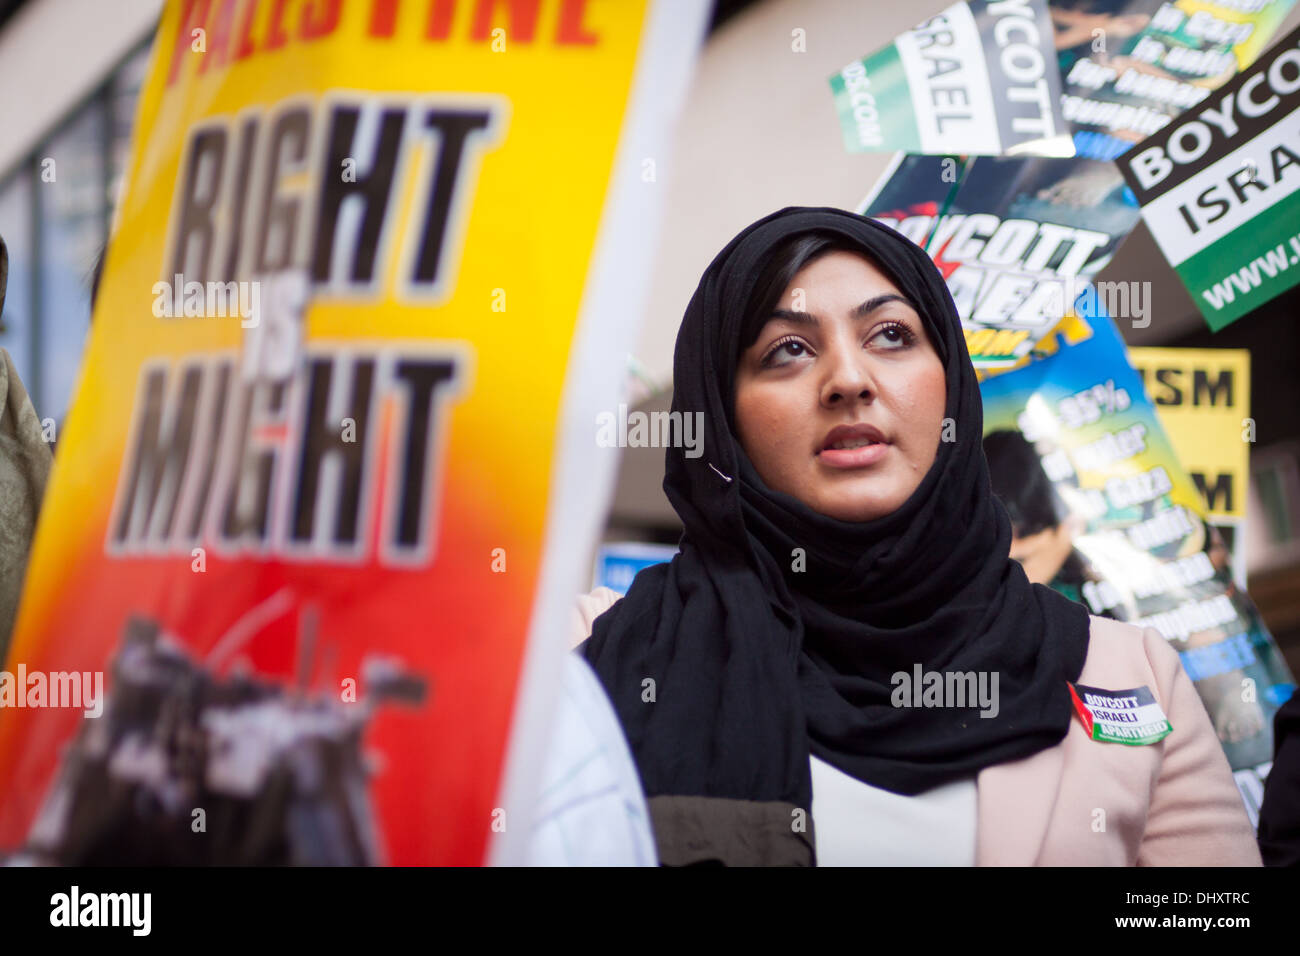 A stands at the 2013 Al-Quds day demonstration, London. Al-Quds day is a pro-Palestinian day of protest. - Stock Image